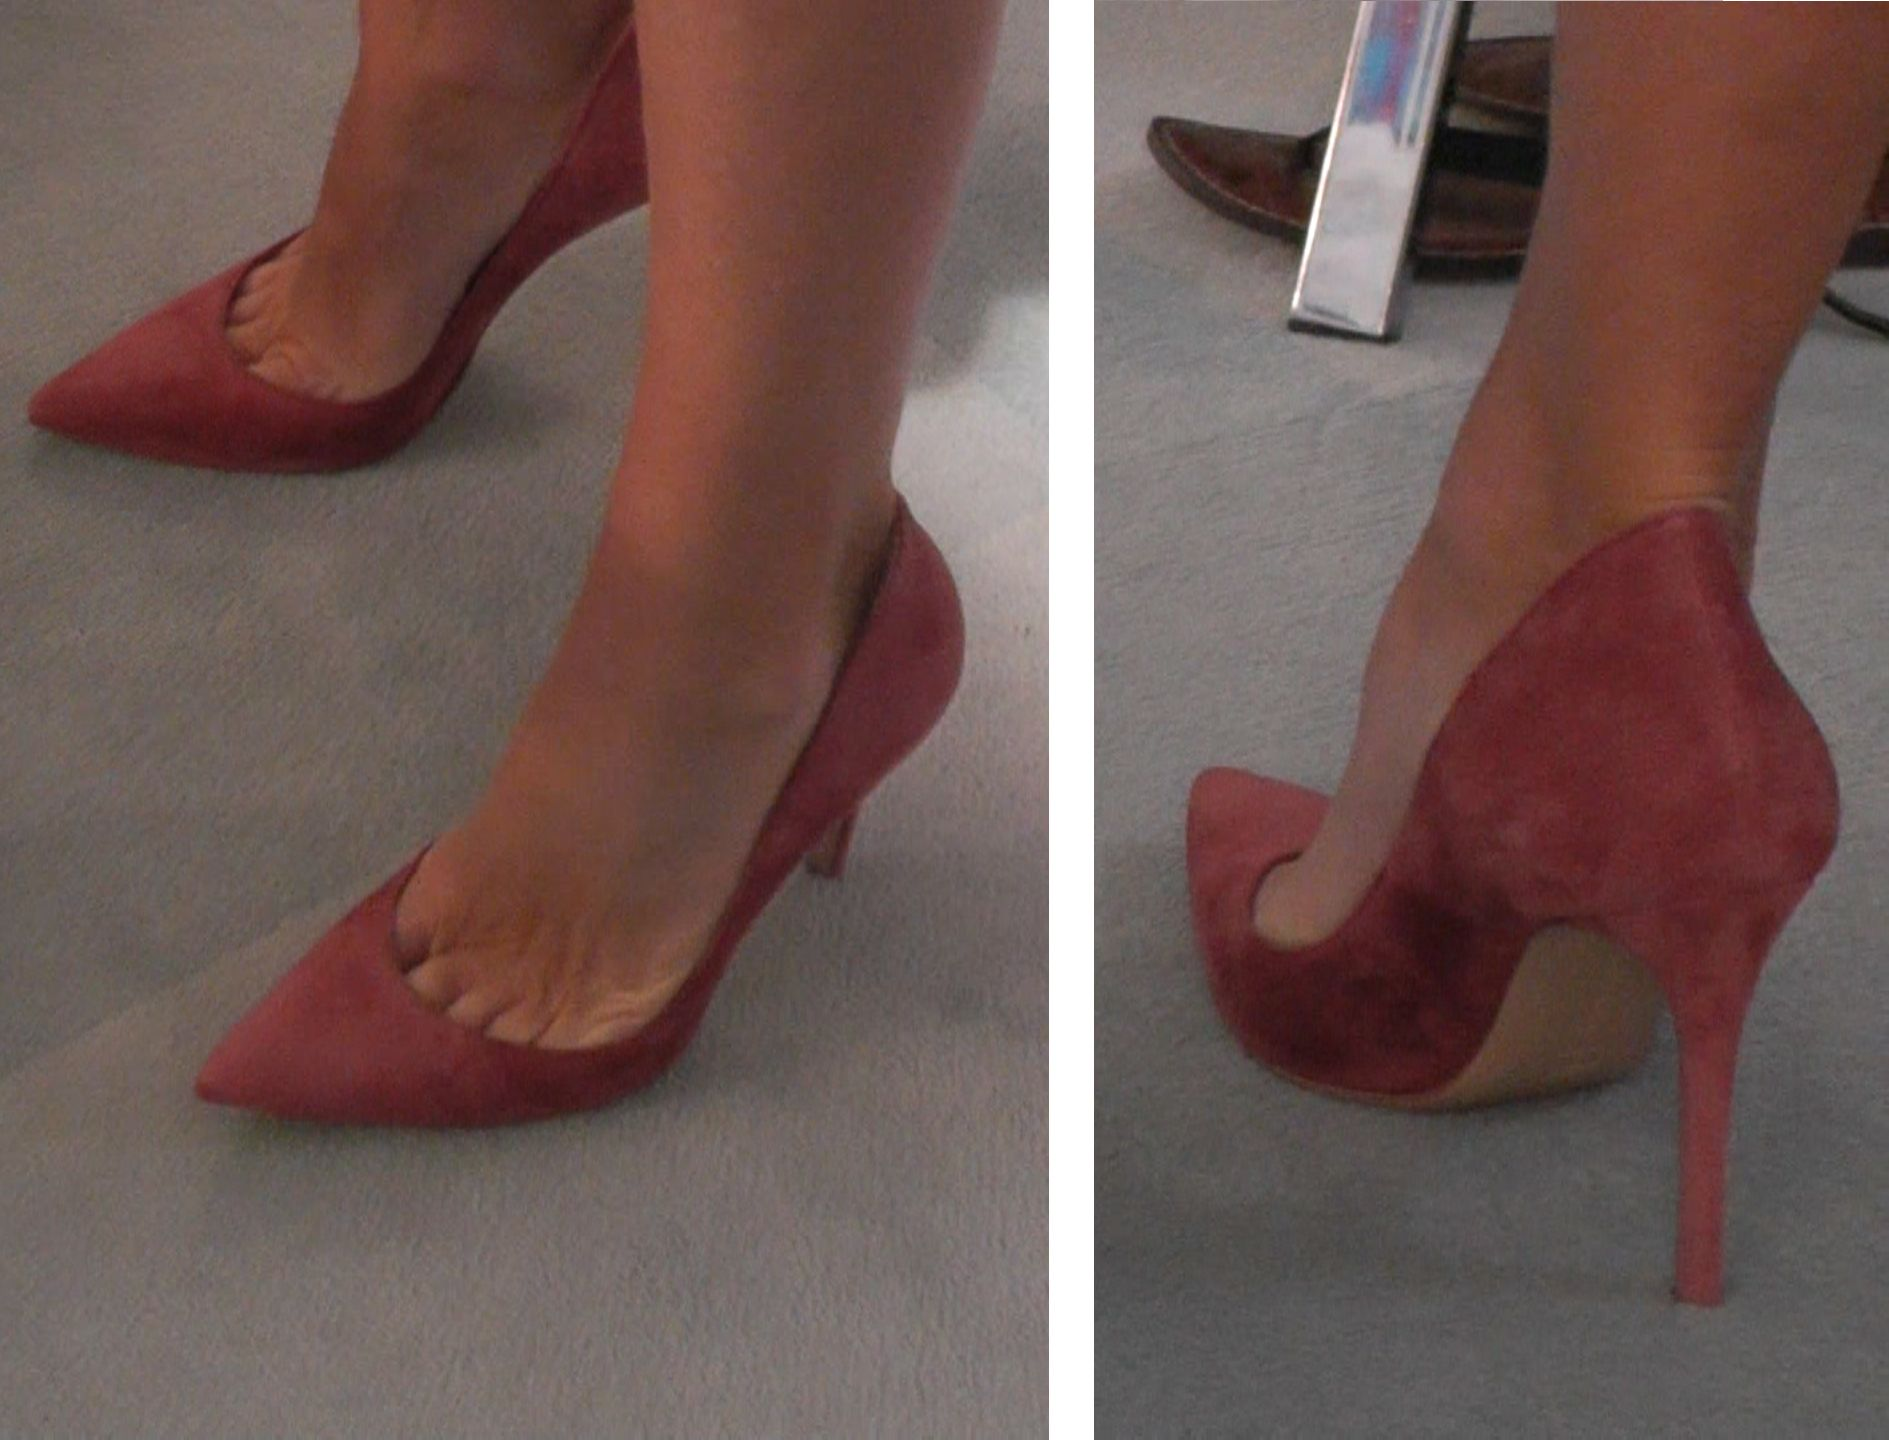 e3b161458 Kelly Ripa's new burgundy suede Sergio Rossi heels. LIVE with Kelly and  Michael Fashion Finder